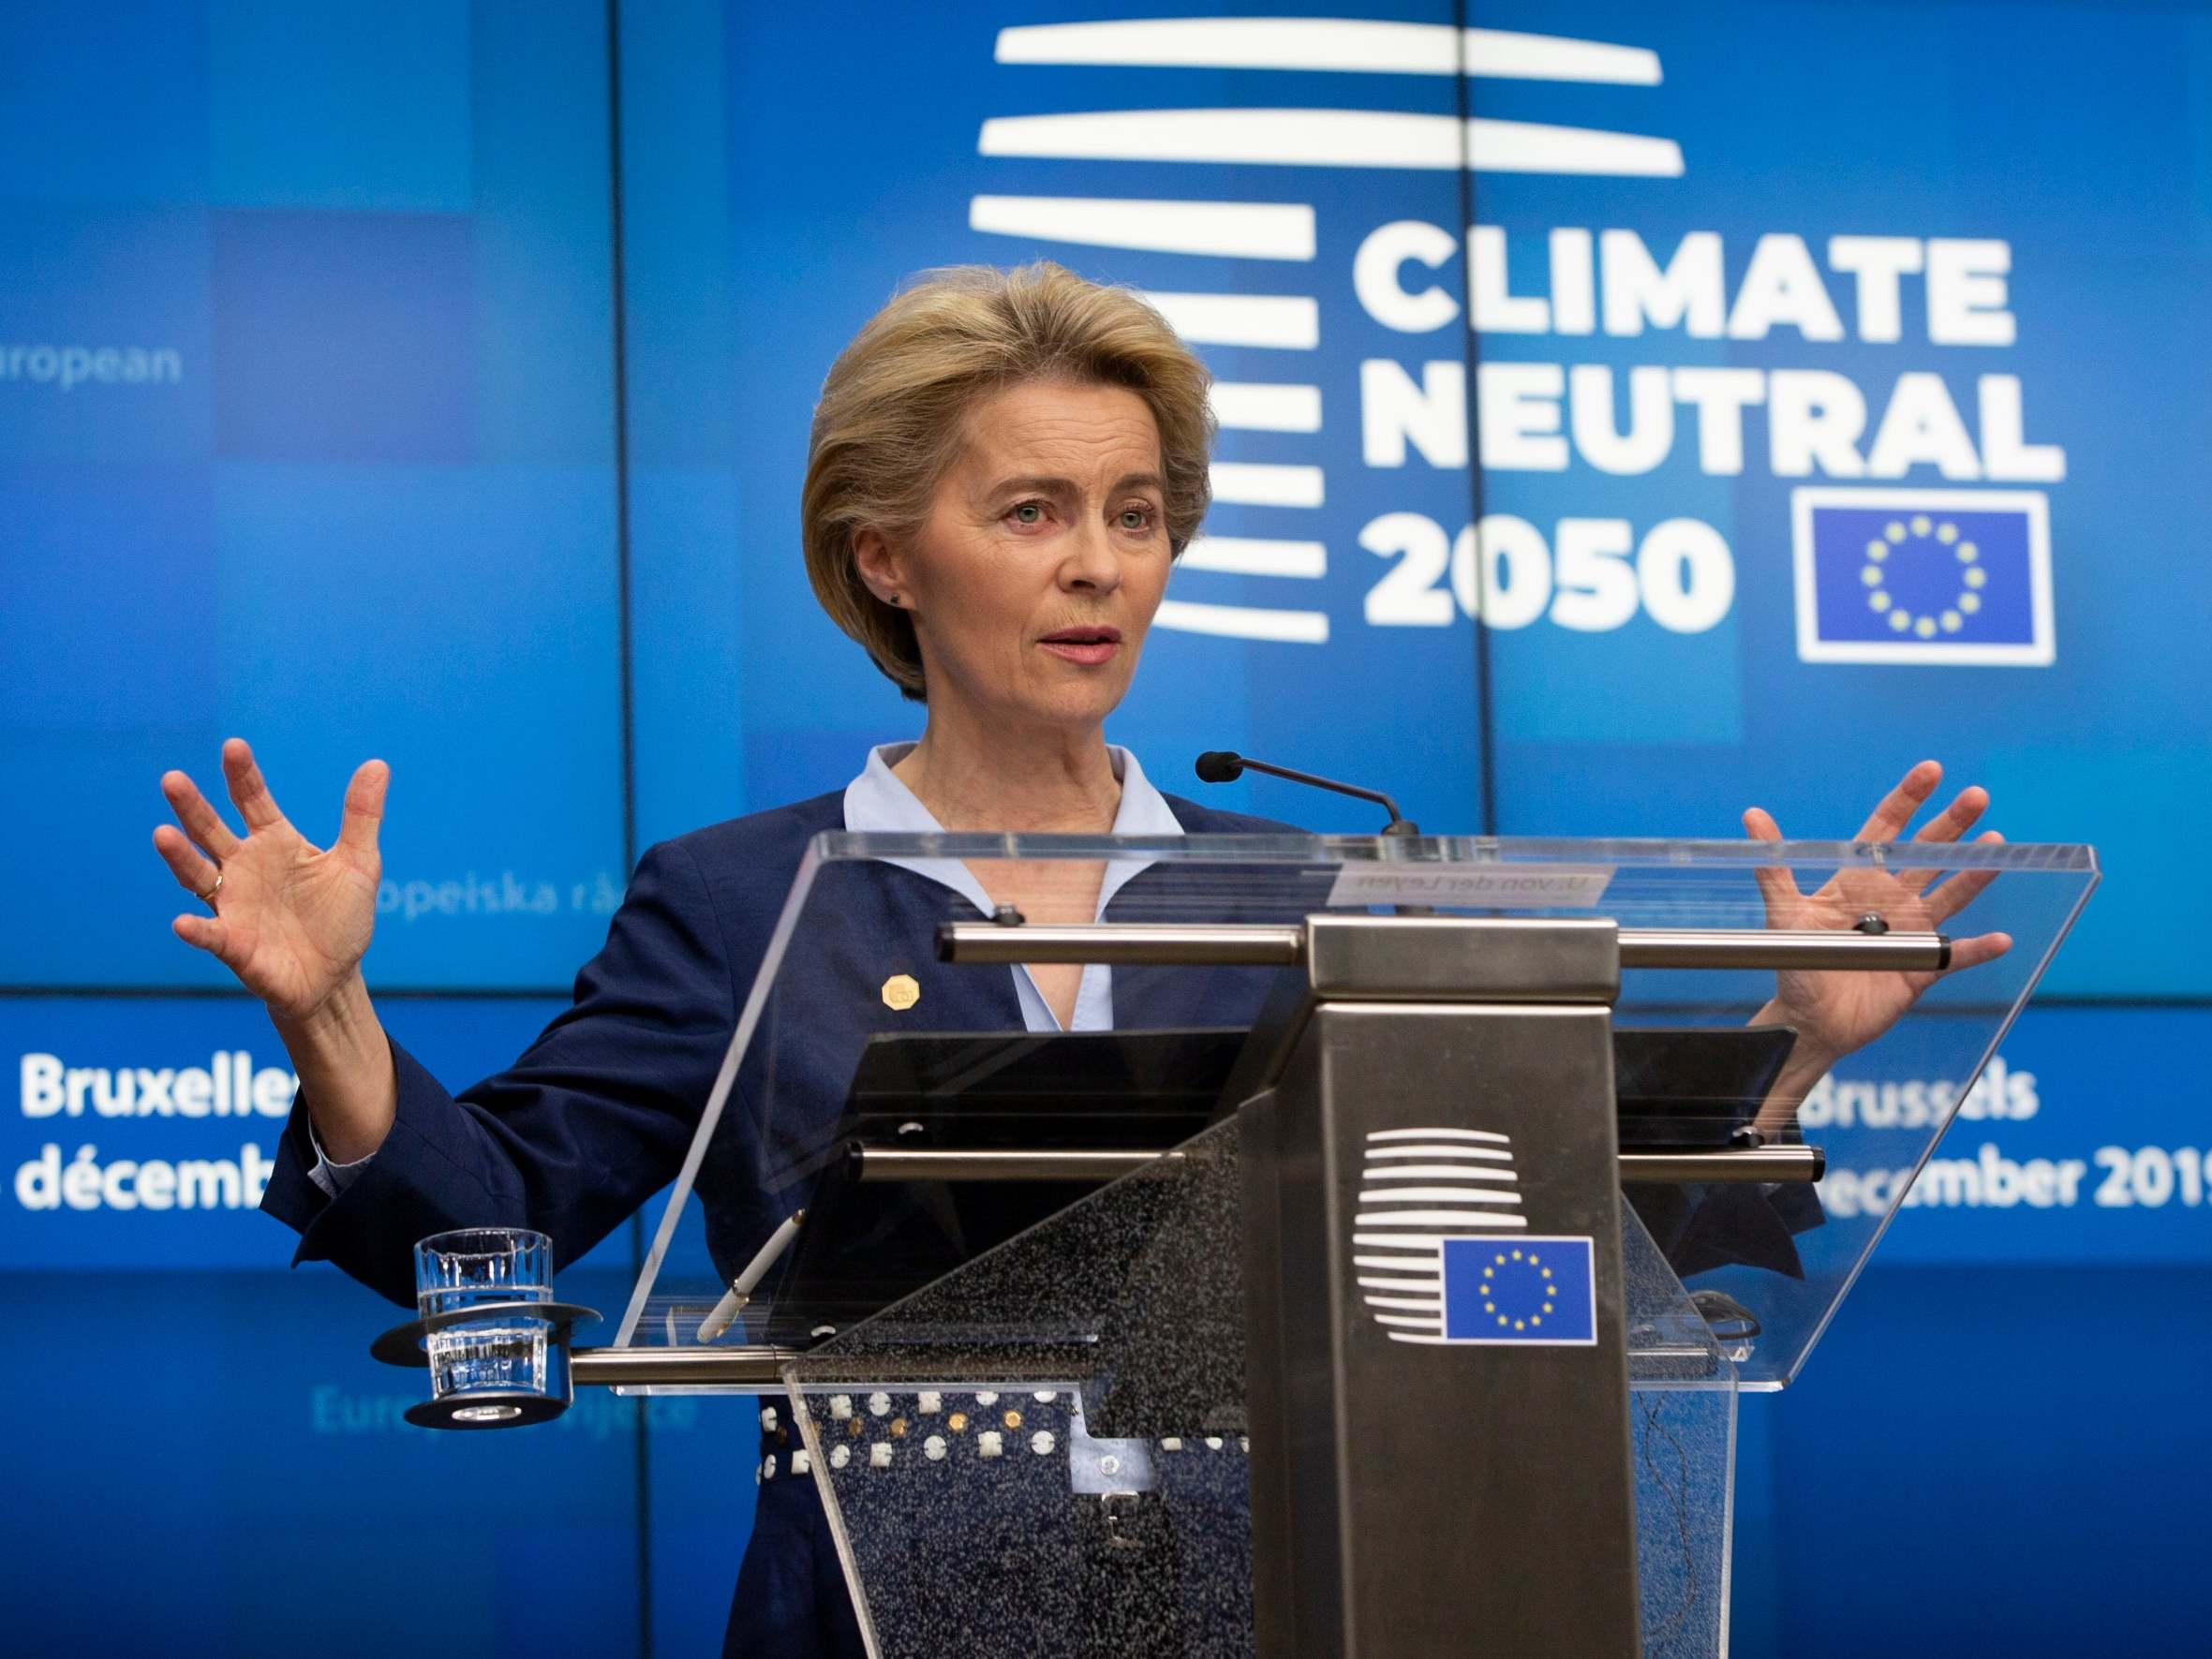 EU commits to being carbon neutral by 2050, but gives Poland exemption